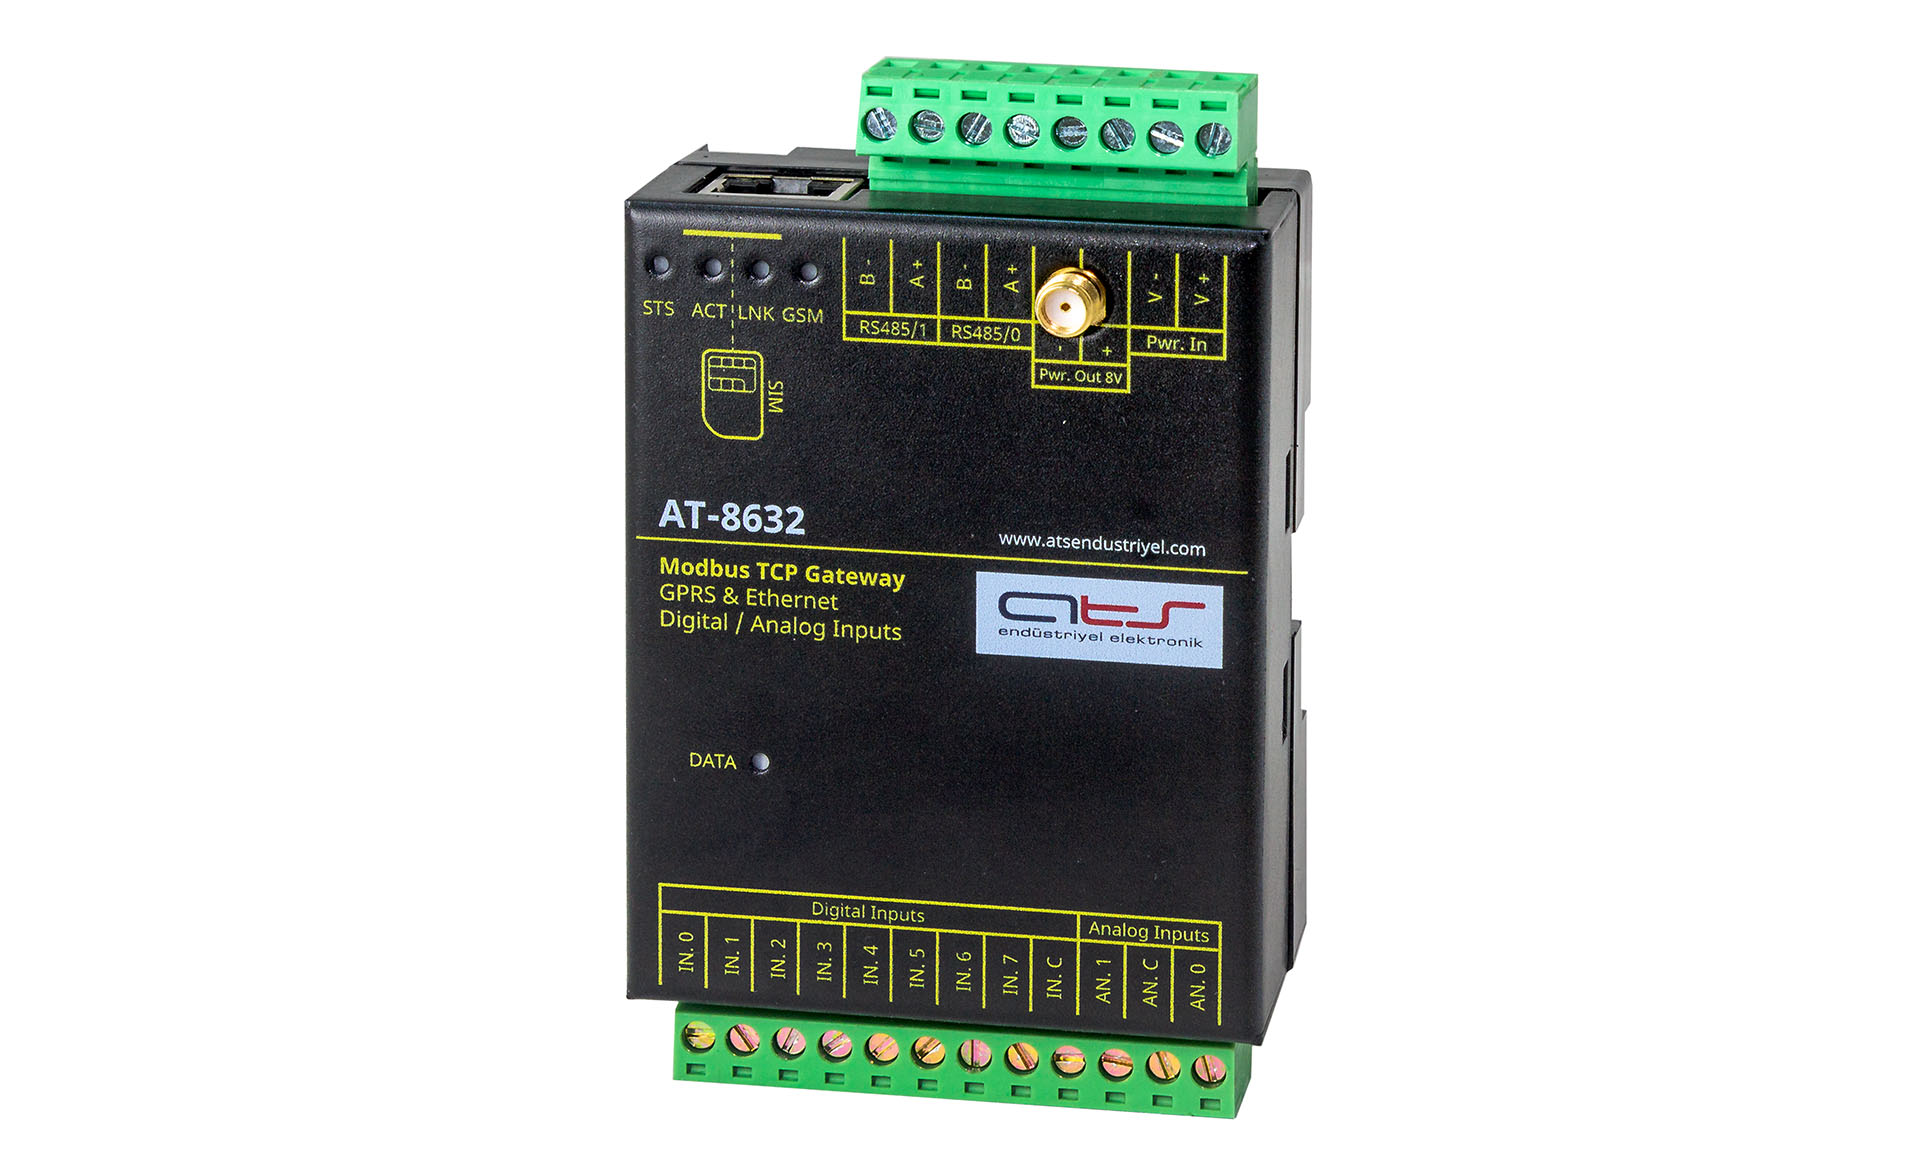 AT-8632 Modbus TCP Gateway